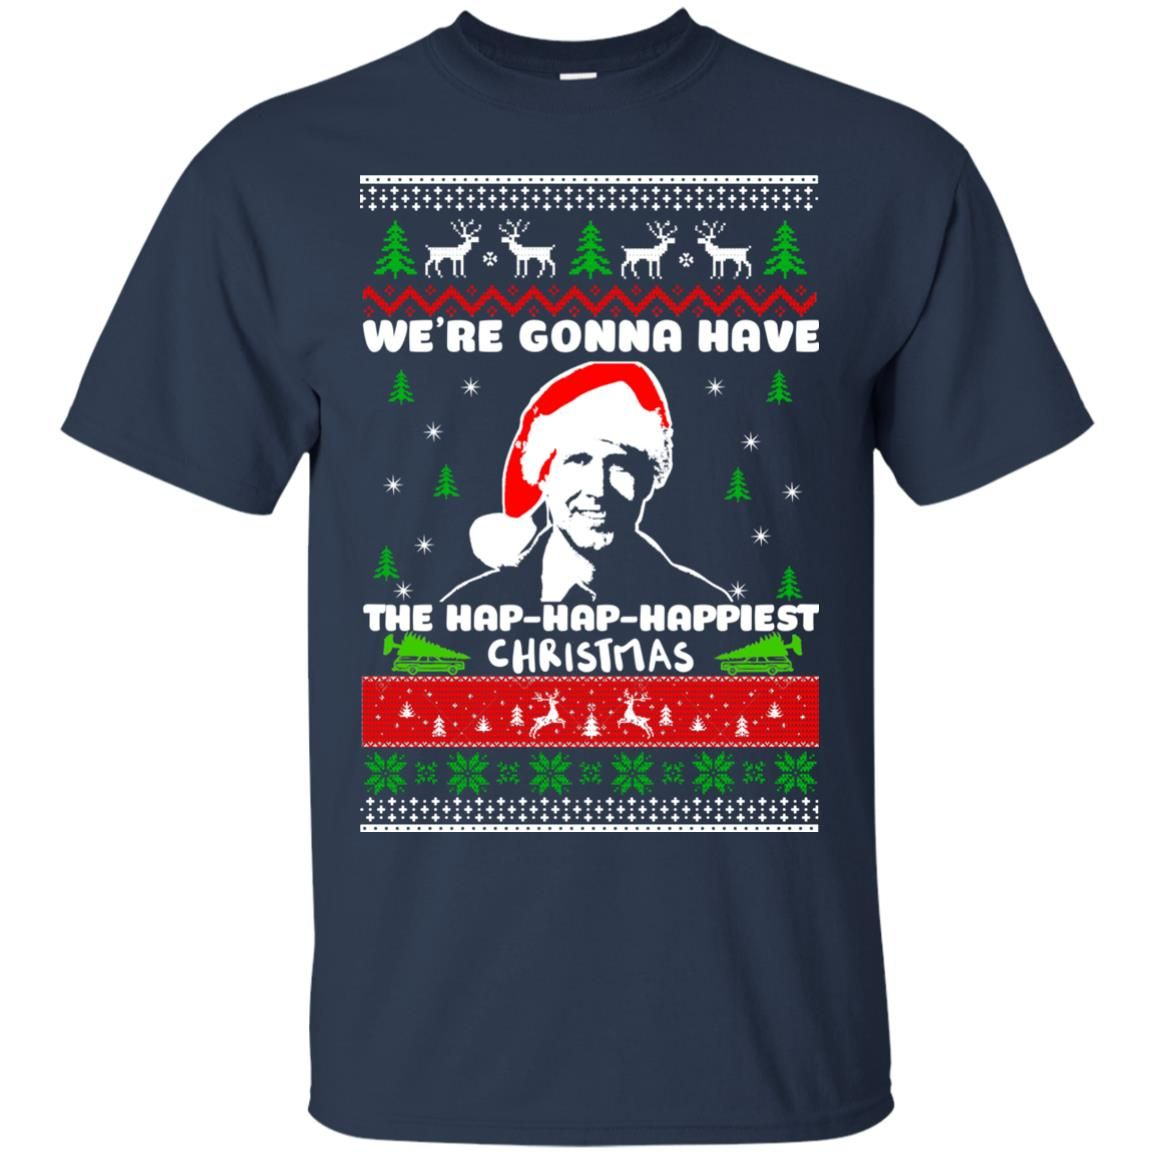 image 1742 - Christmas Vacation: We're gonna have the Hap-Hap-Happiest Christmas sweater, hoodie